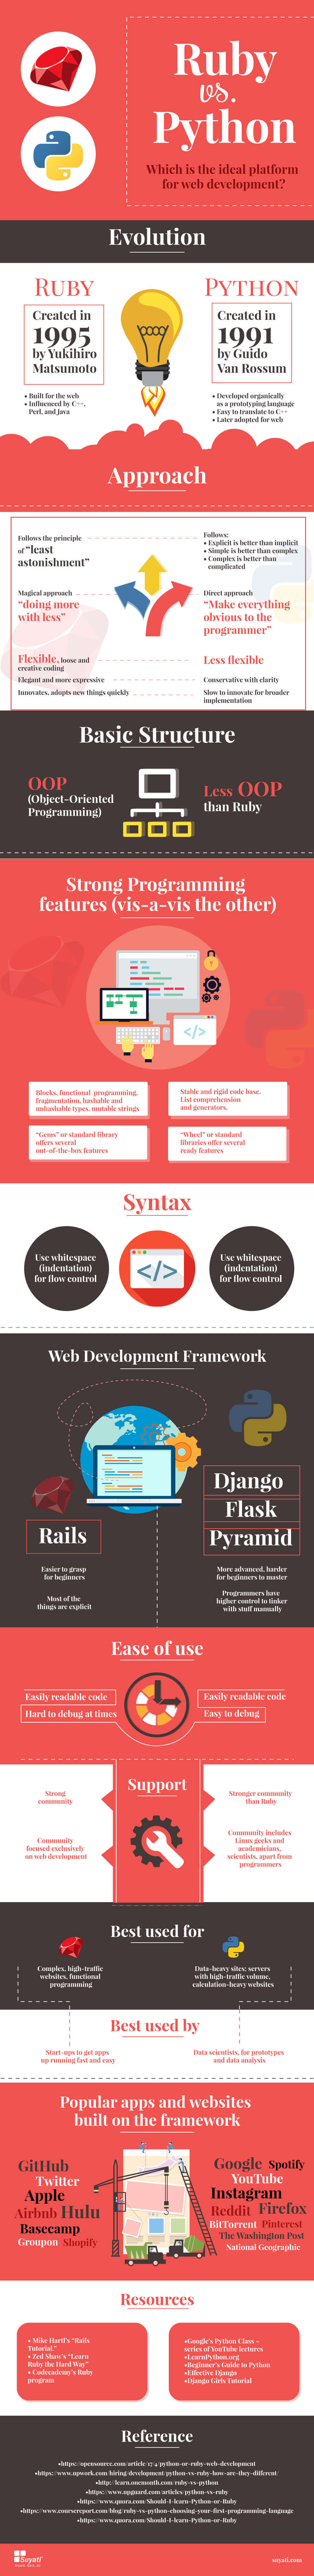 Ruby vs Python-which is ideal for web development compressed